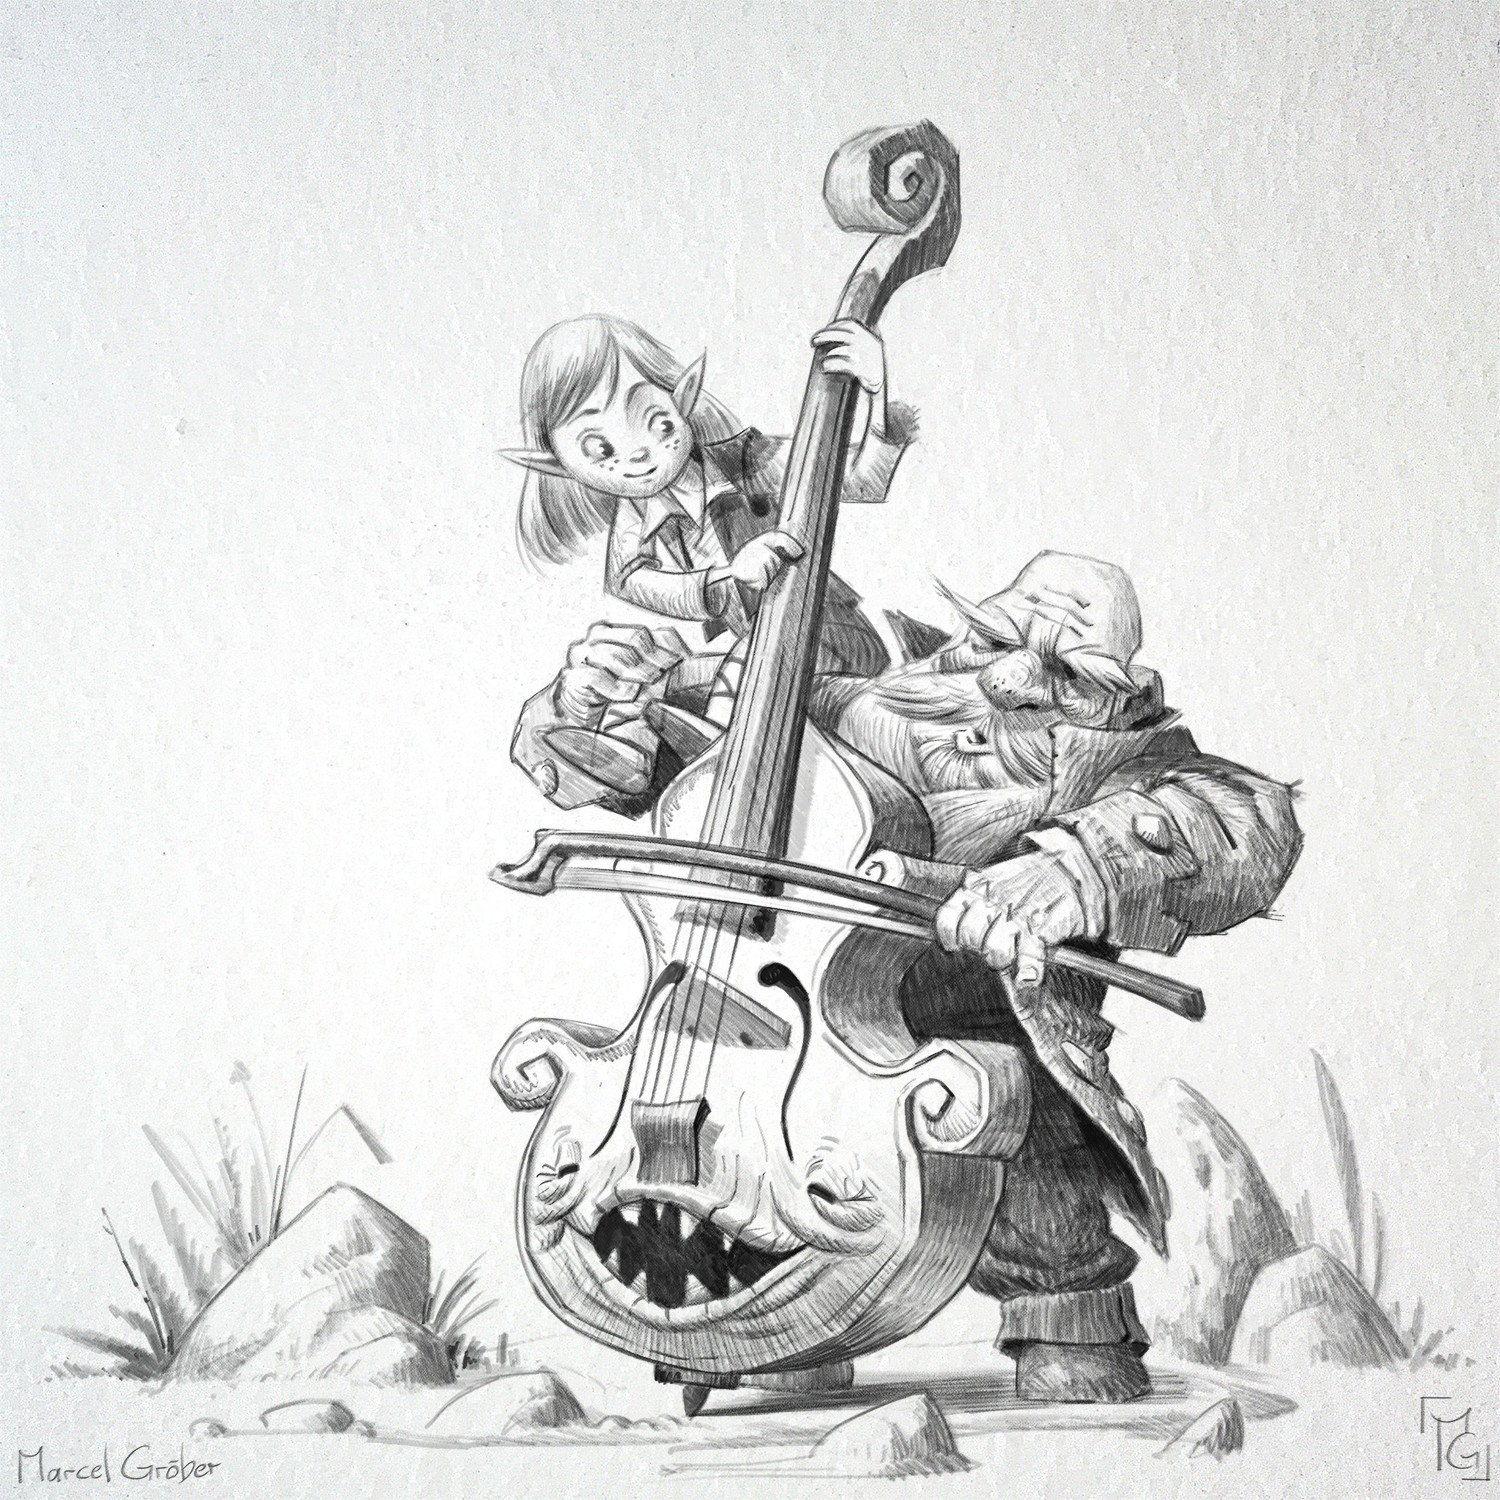 Wilbyr, the bassist and his apprentice Roland. Both playing the Mimic bass Amber.